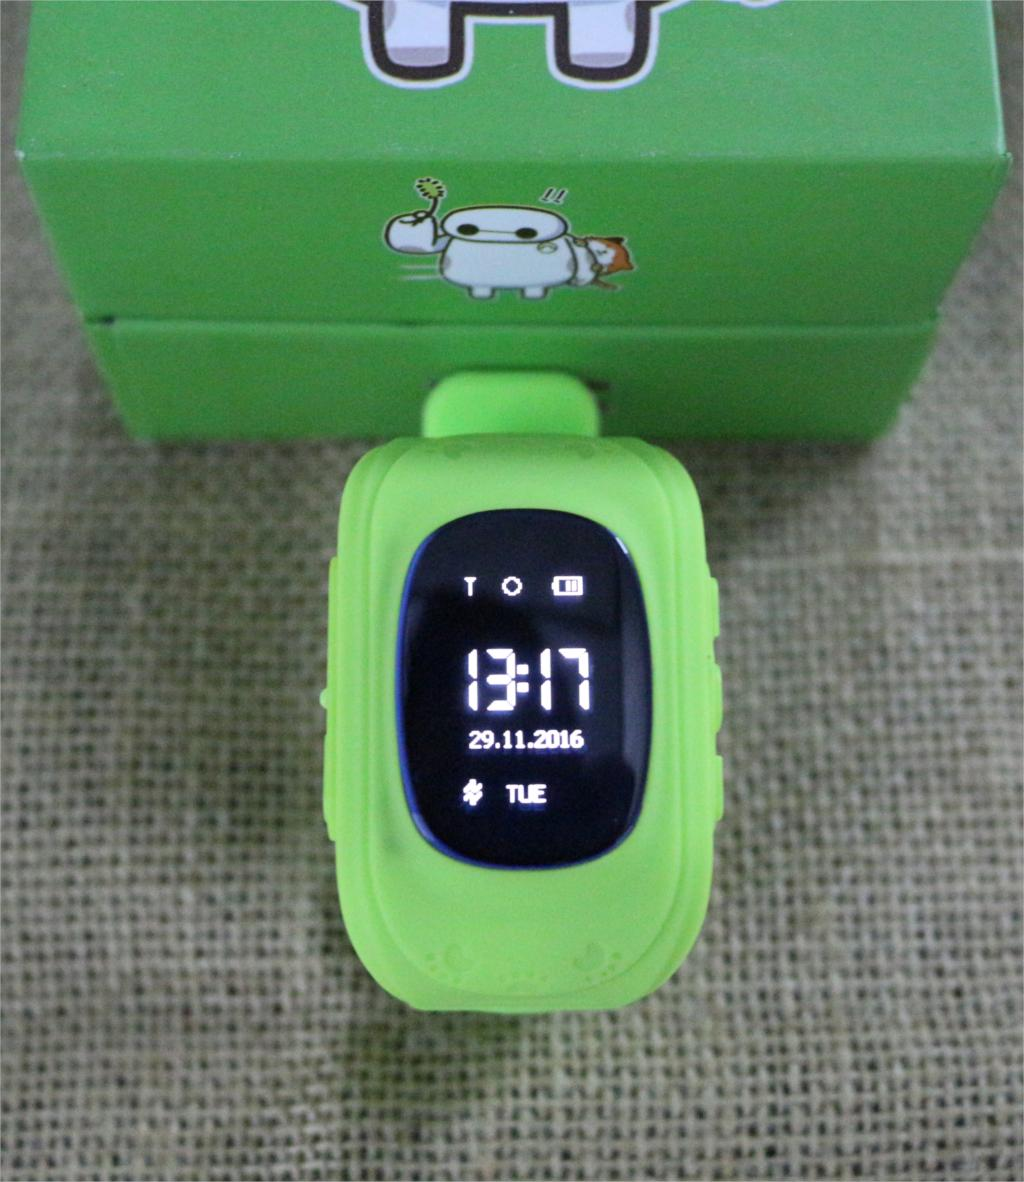 HTB1A2JUOFXXXXXbXXXXq6xXFXXXZ - Q50 Child GPS Smart baby GPS watch Phone Tracker Kids SOS GSM Smartwatch For iphone Android Children's watches watch clock